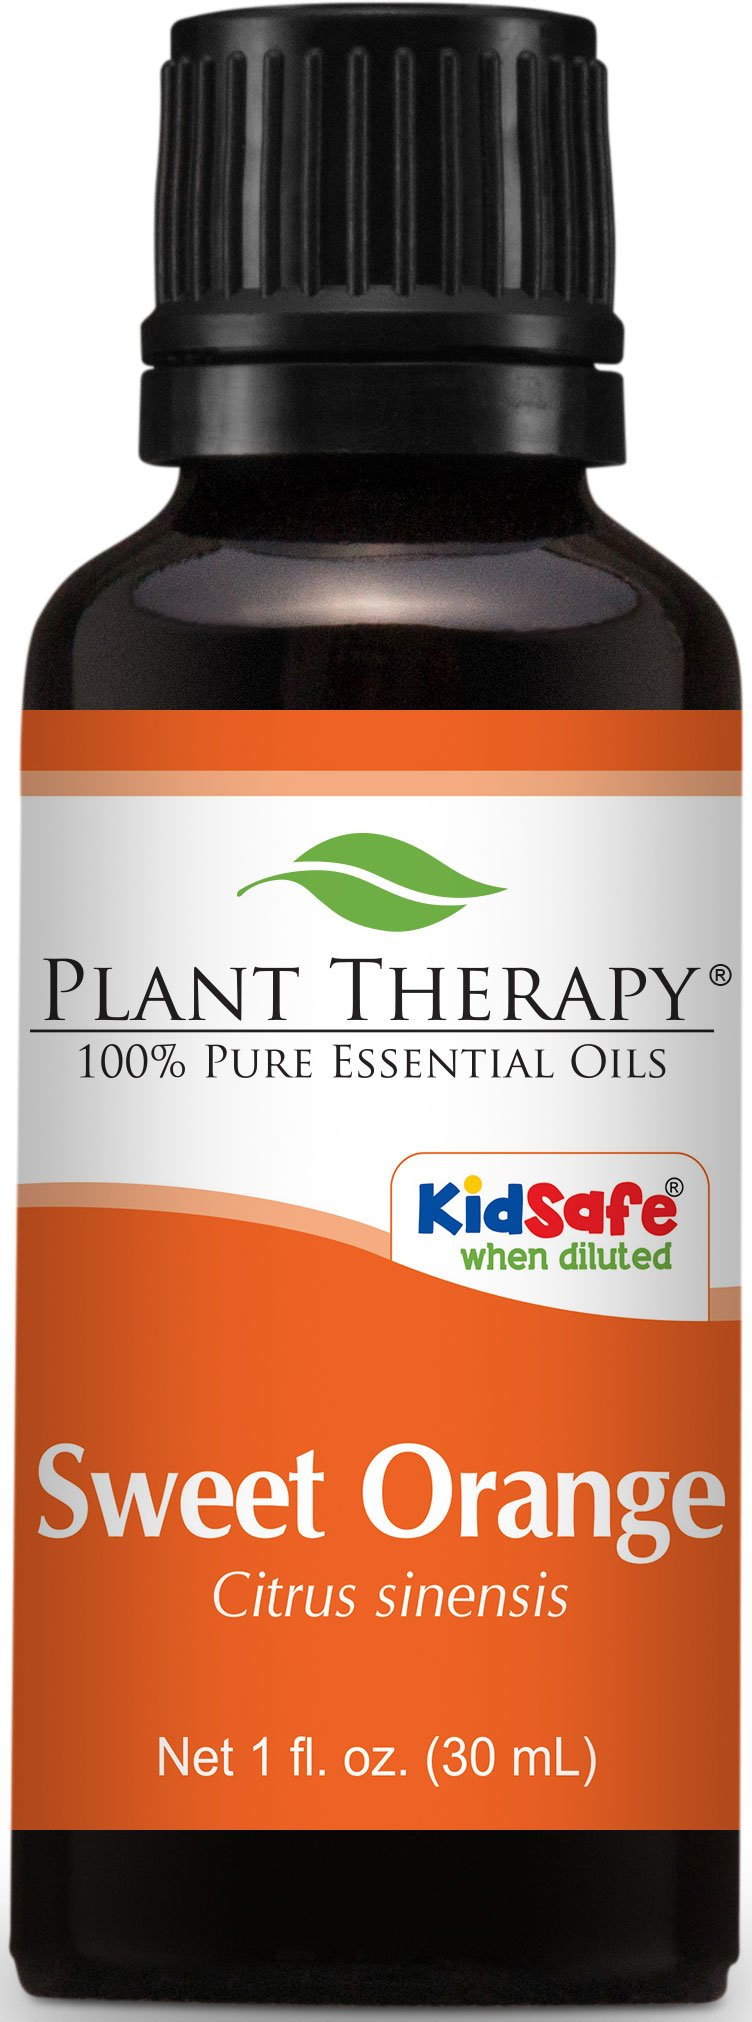 Plant Therapy Sweet Orange Essential Oil. 100% Pure, Undiluted, Therapeutic Grade. 30 ml (1 oz).